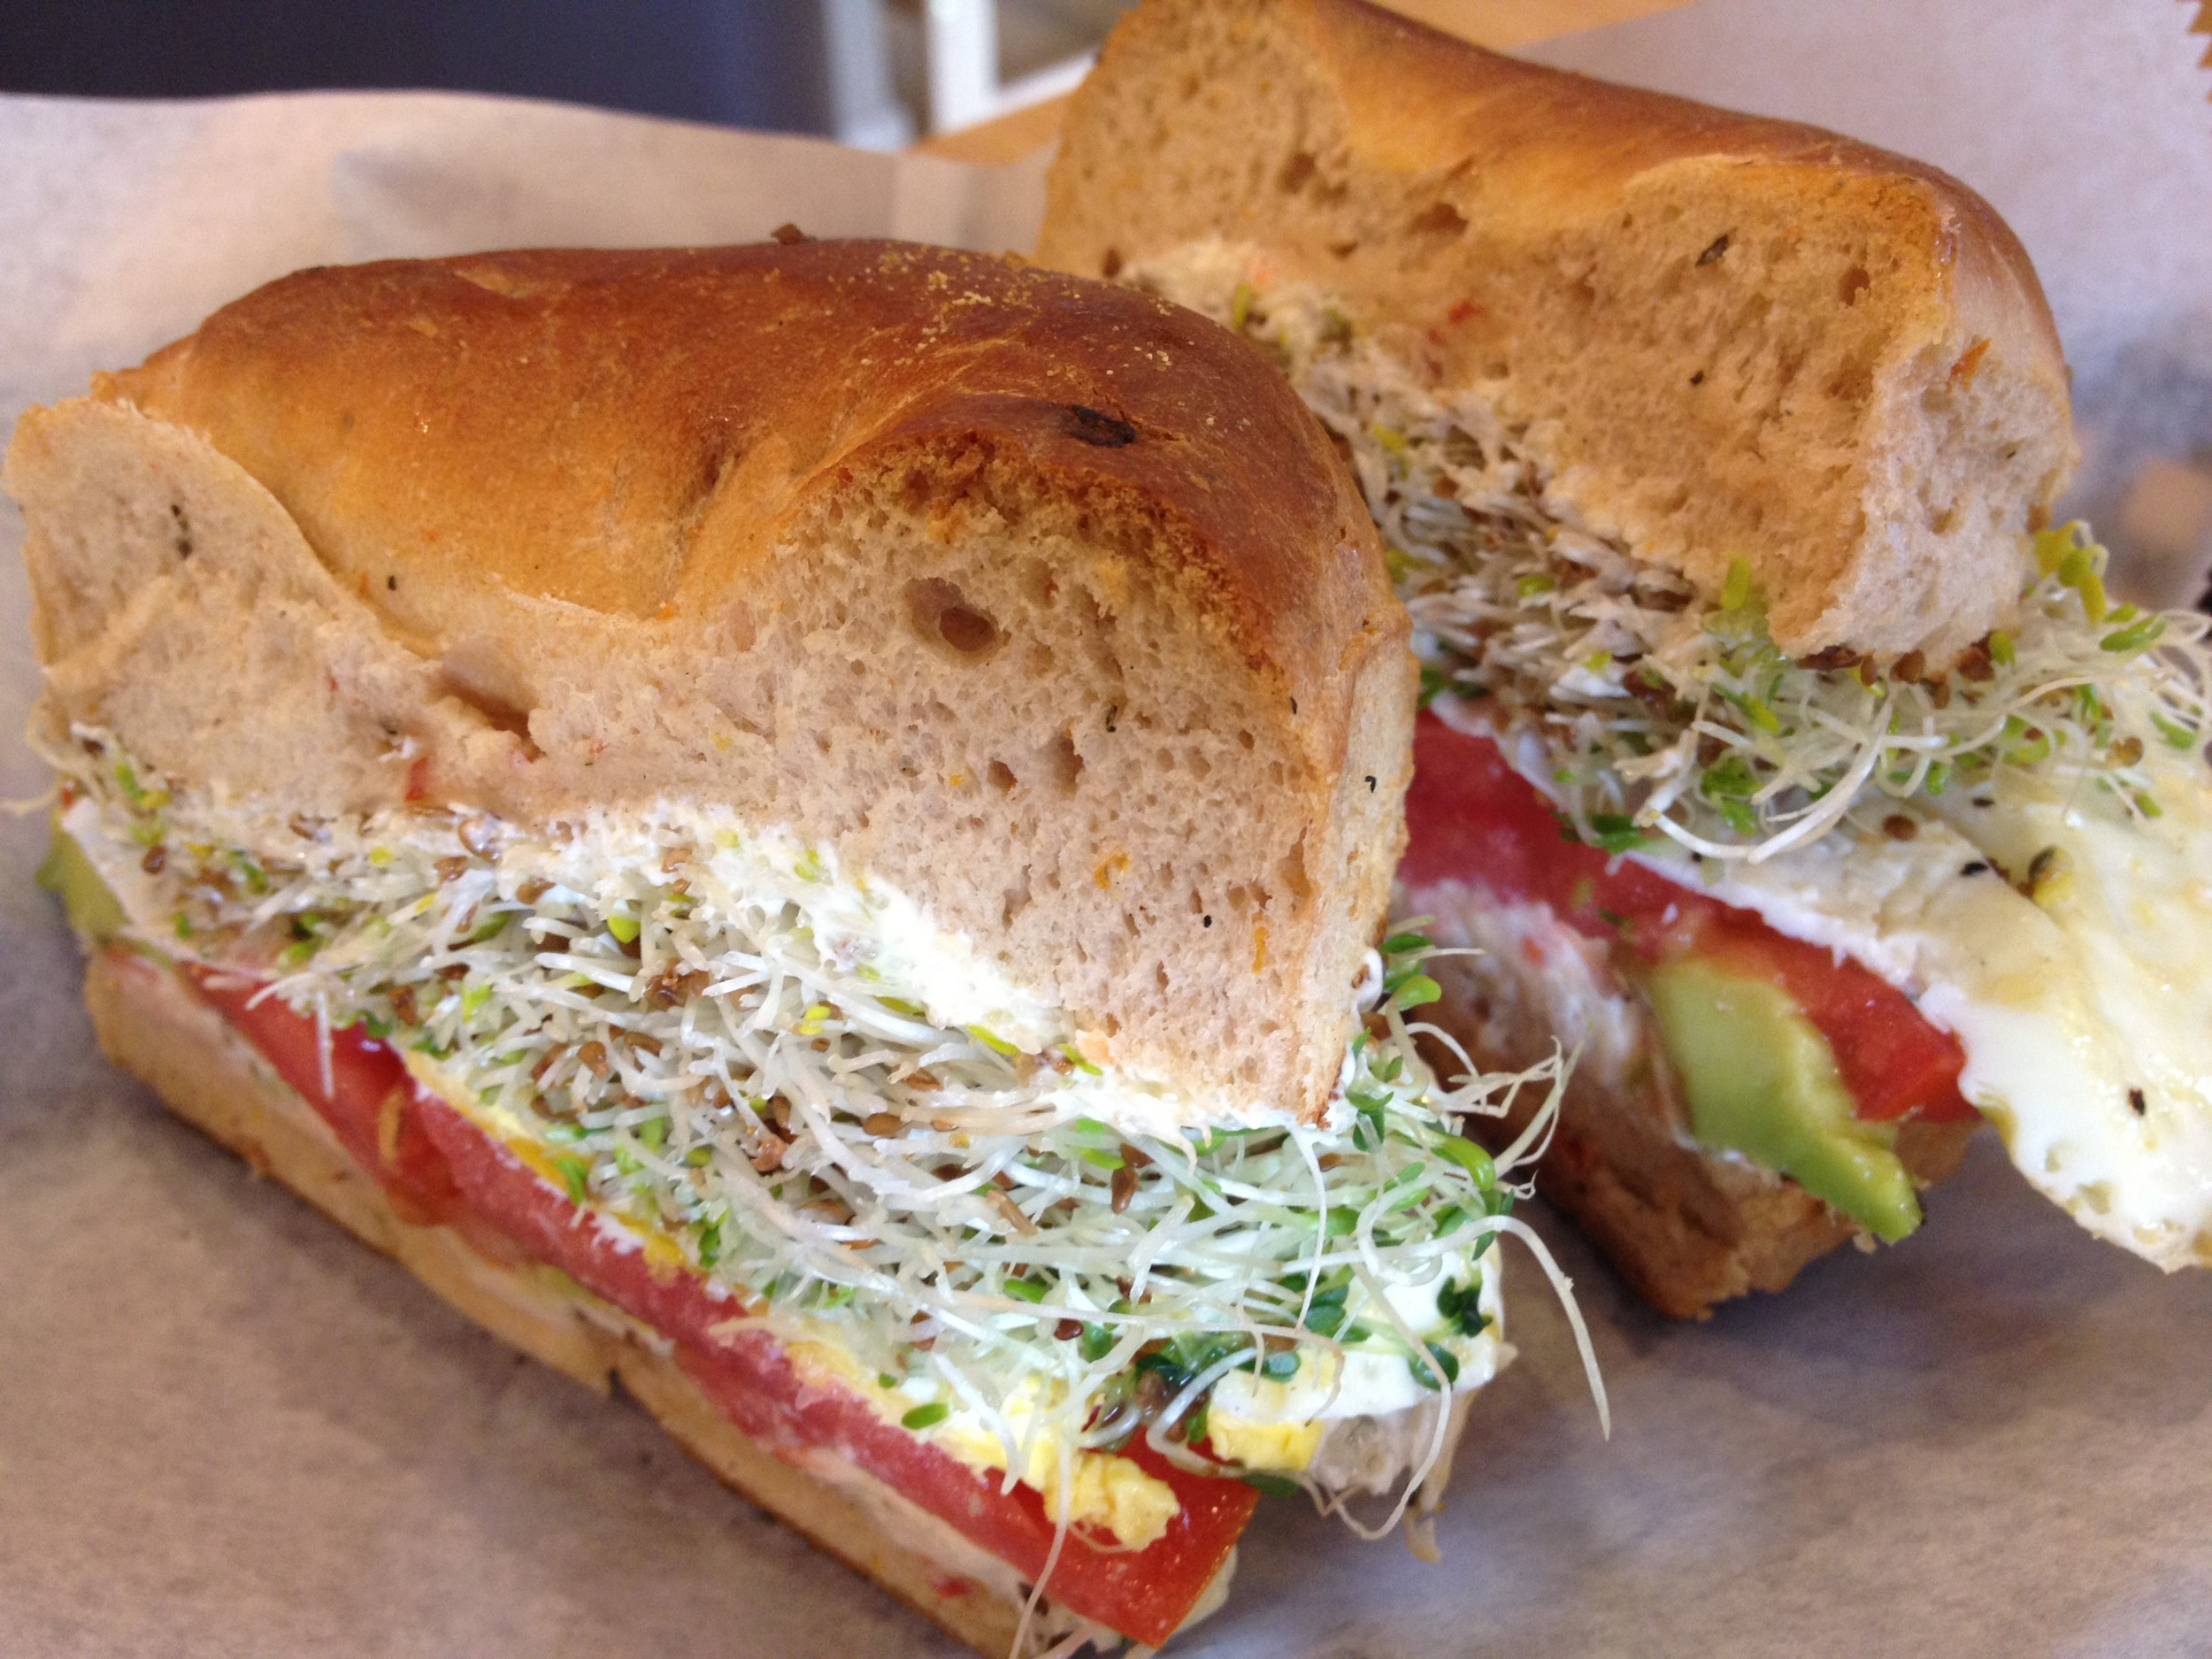 The Cali Love is a filling breakfast sandwich: egg, tomato, sprouts, avocado and your choice of cream cheese on a toasted bagel.